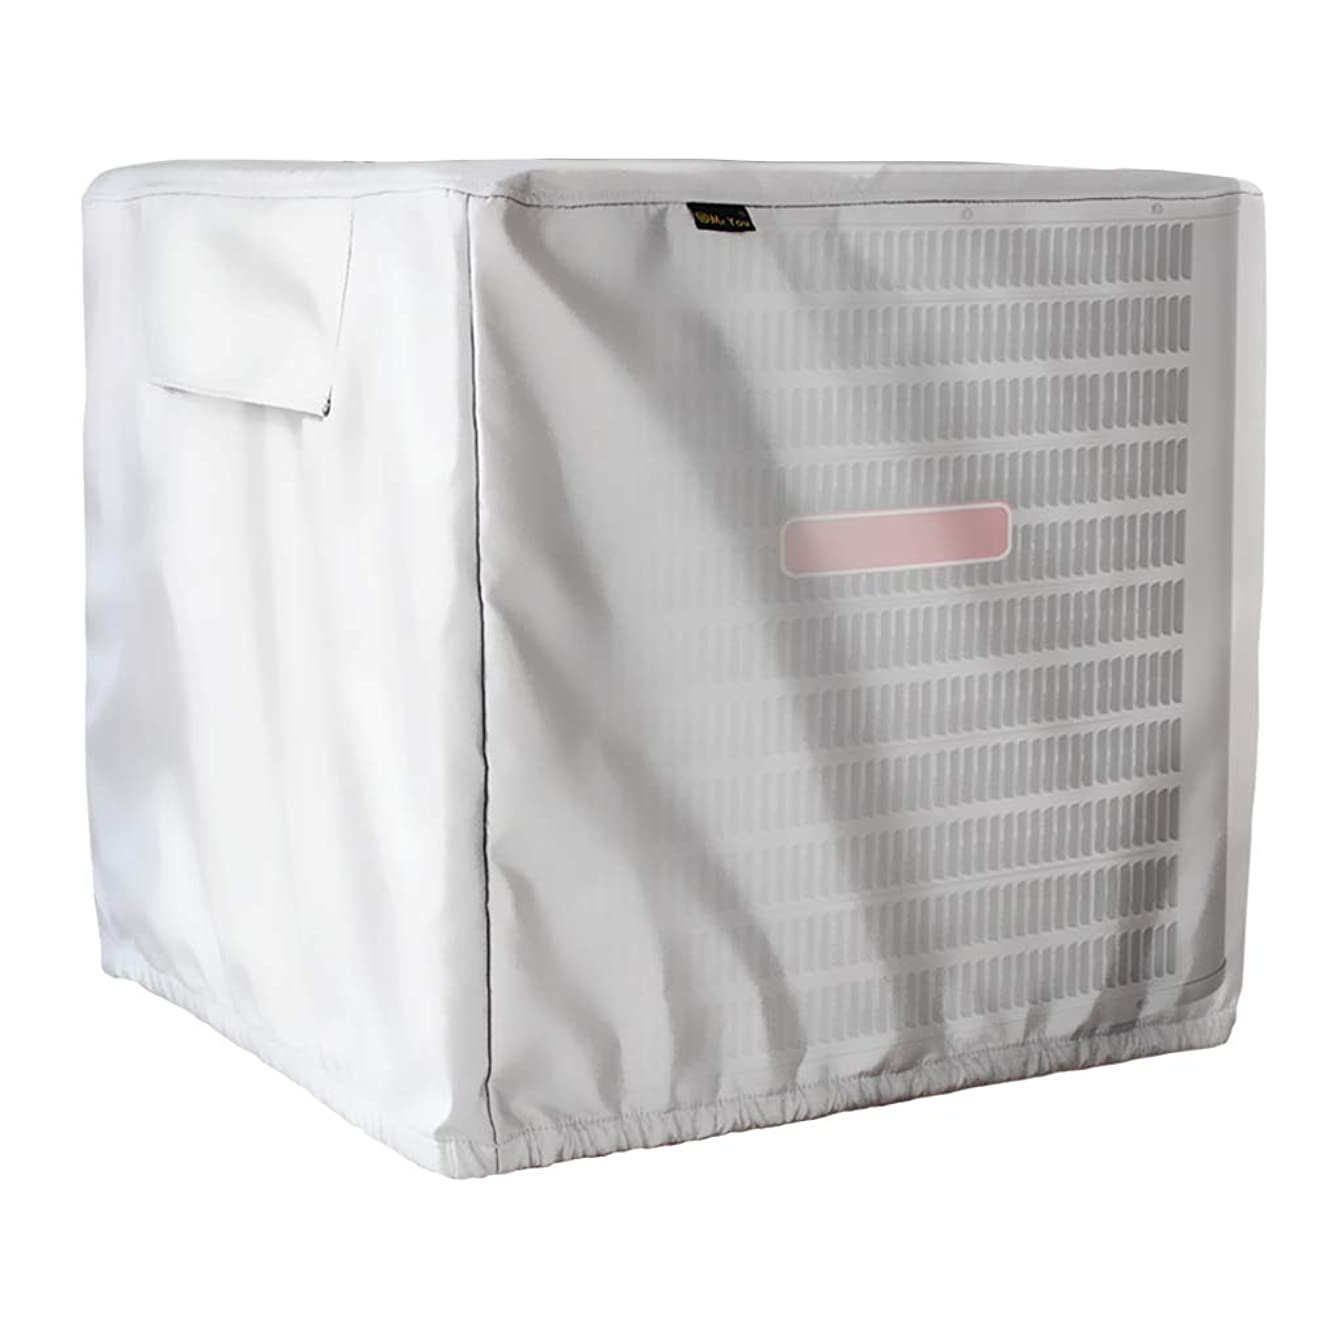 Mr.You Winter Air Conditioner Cover - AC Cover Outdoor Protection - Heavy Duty Waterproof All Weather Protection (D32W35H40in,Oxford Fabric)